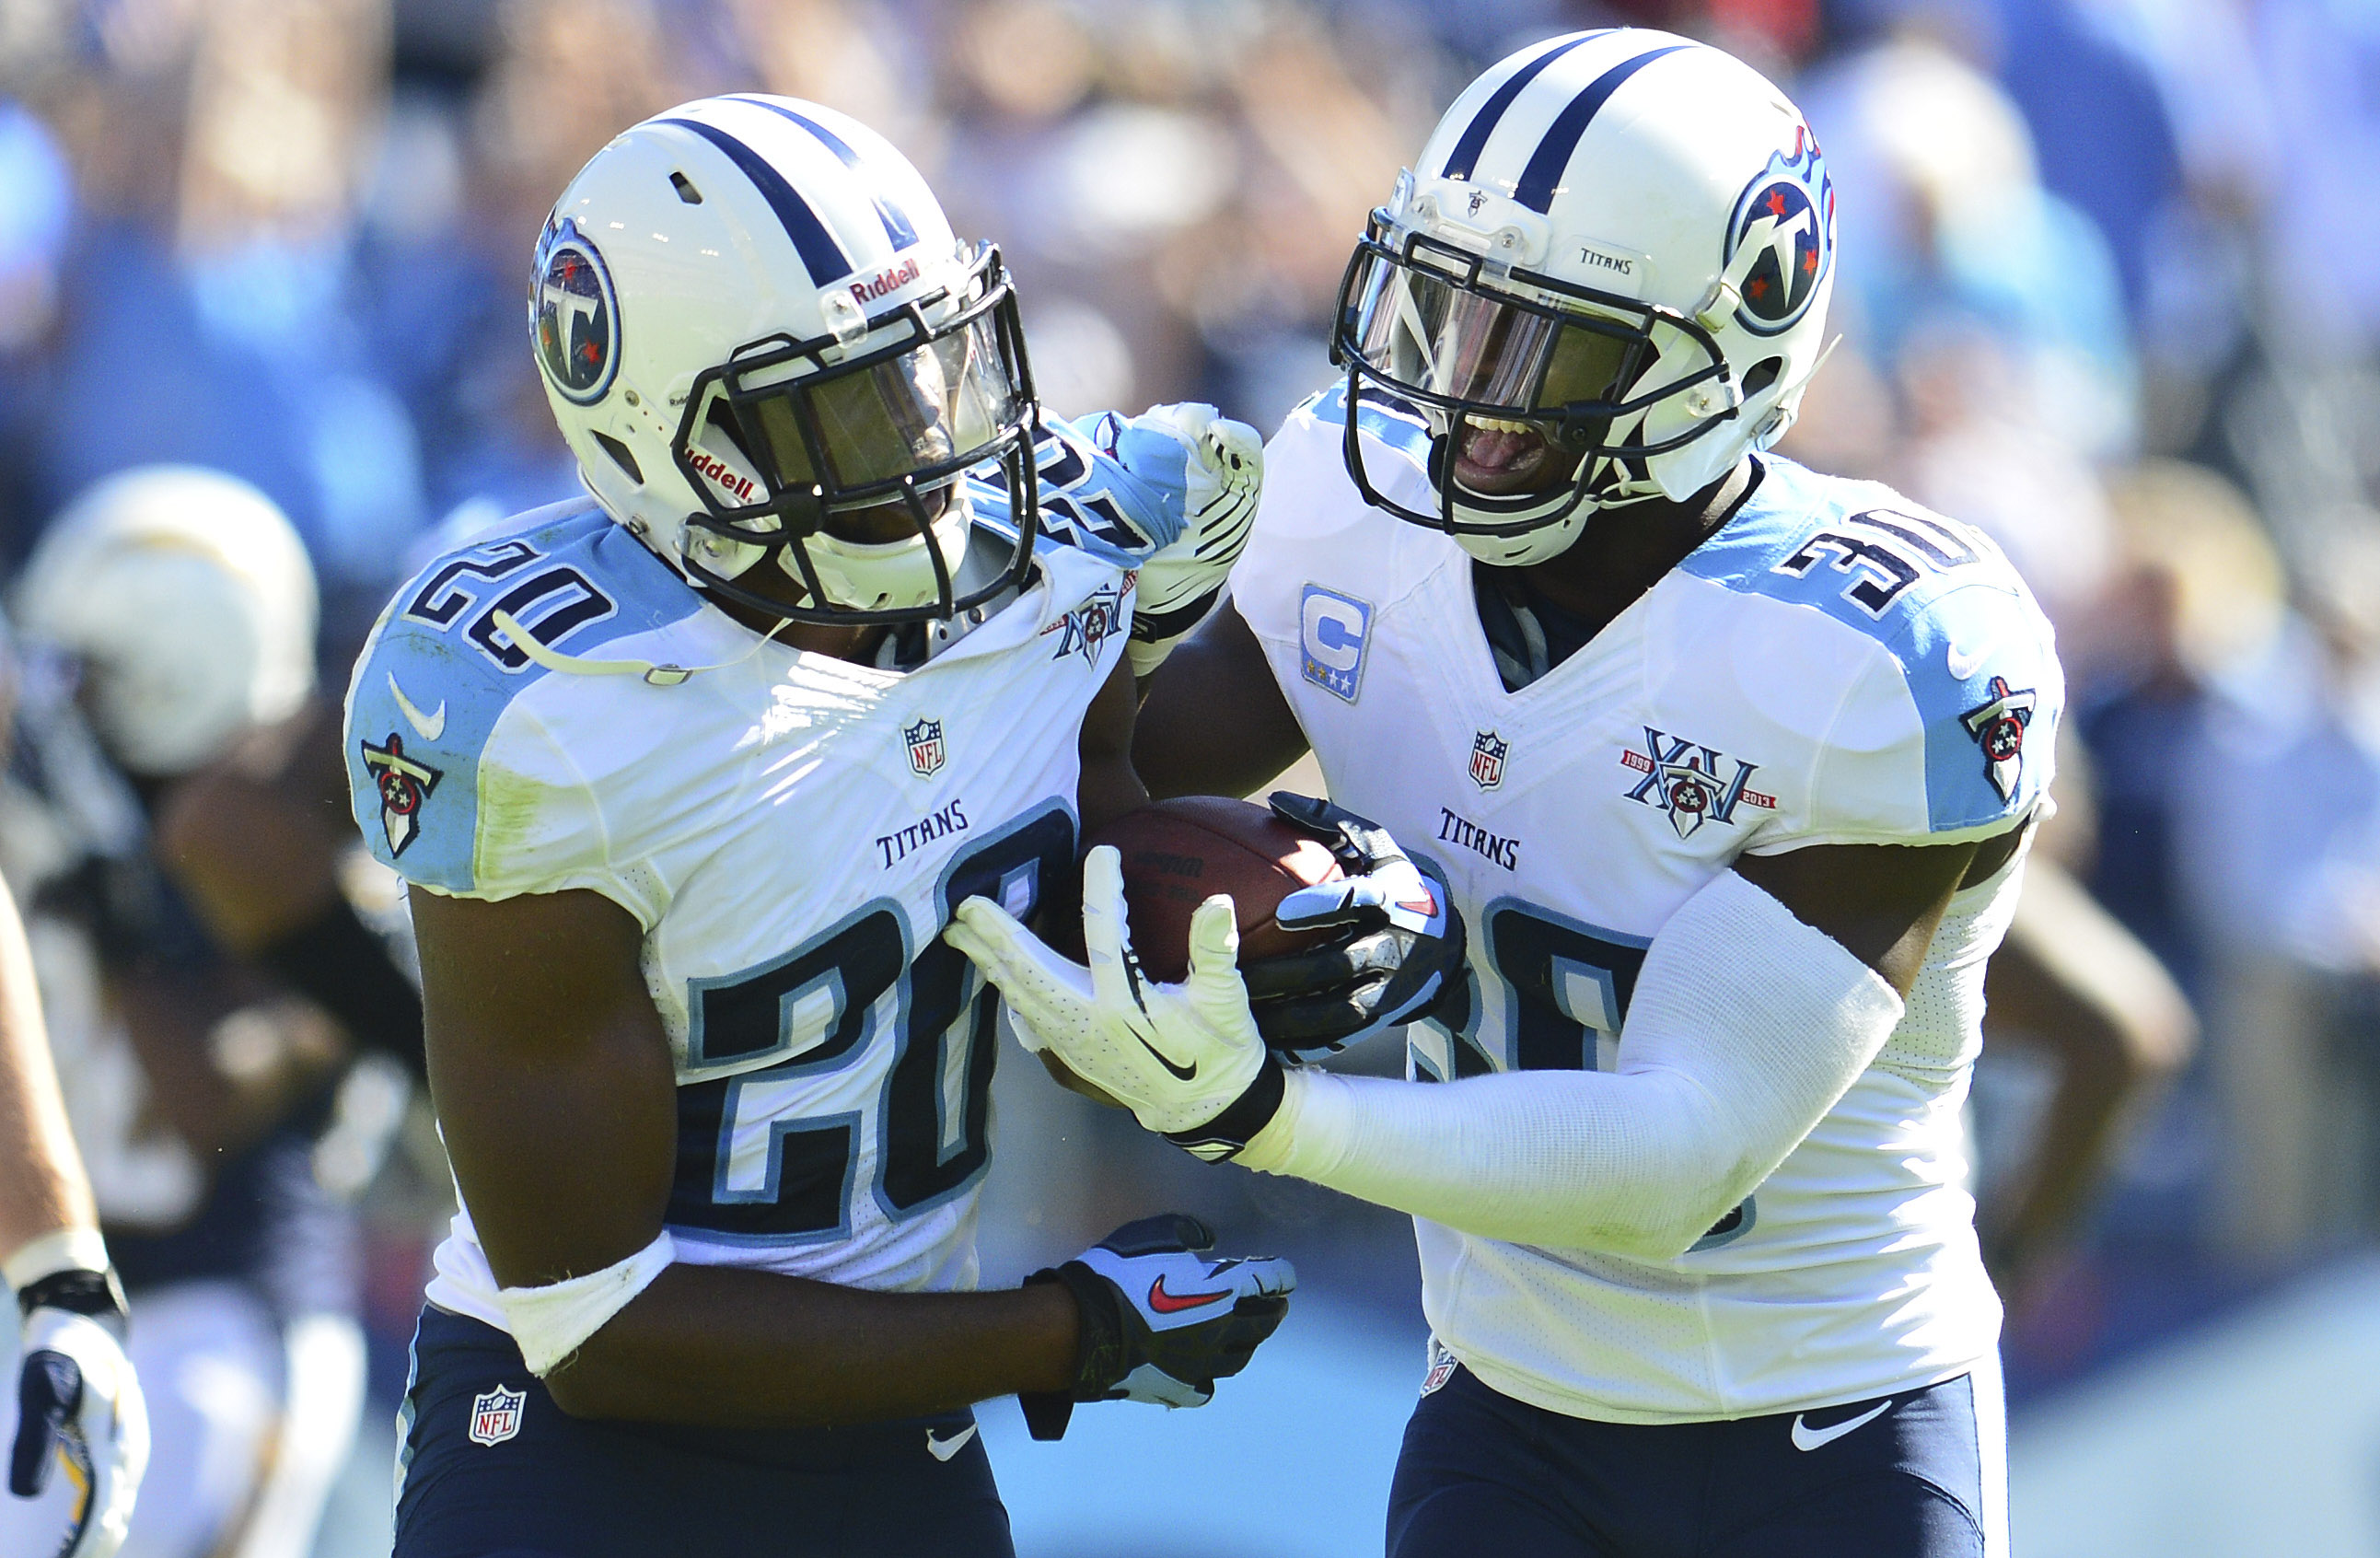 Do Not Forget The Tennessee Titans Cornerbacks Needs Help